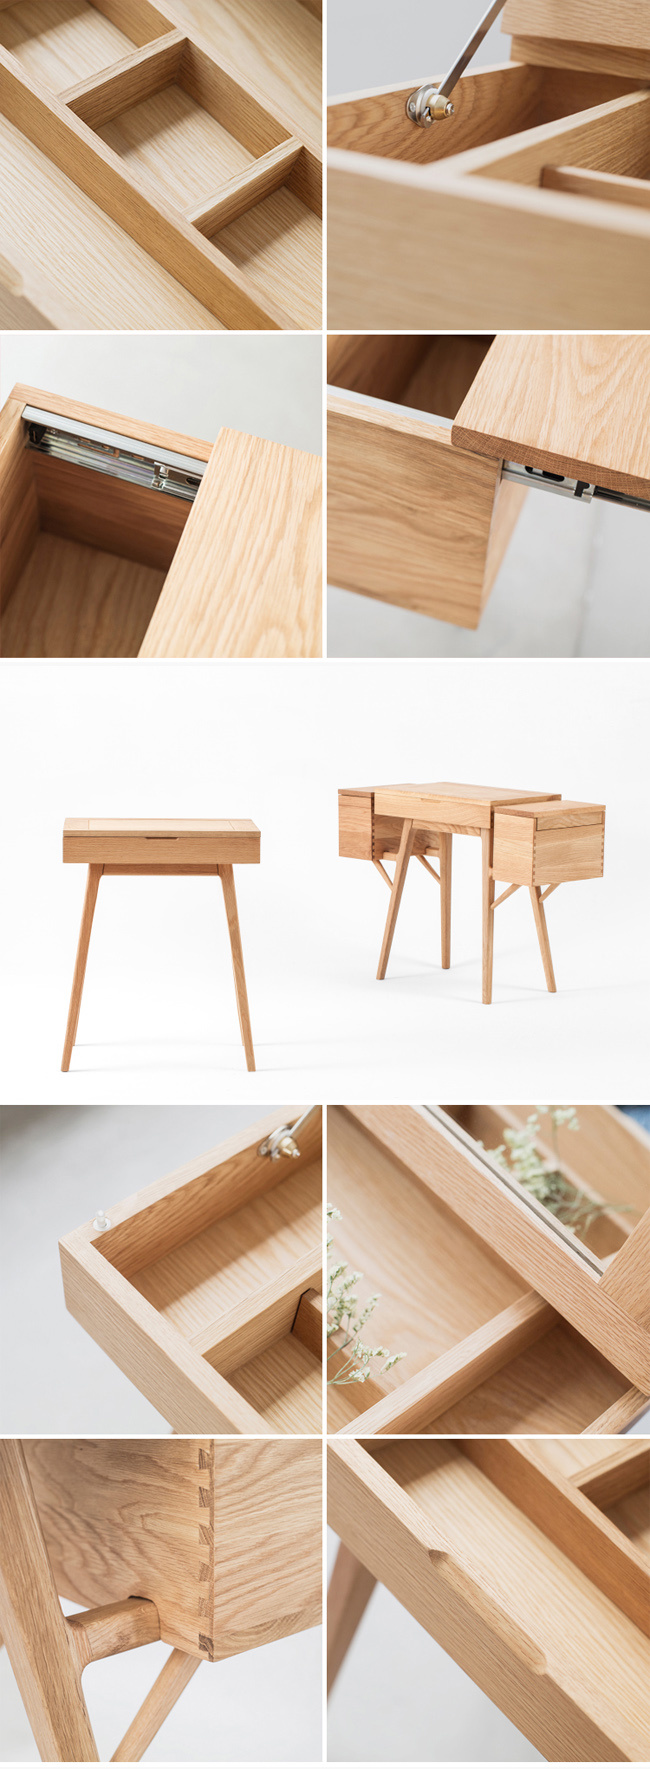 Walnut-Wooden-Storage-Dressing-Stand-Table-Wooden-Furniture(6)